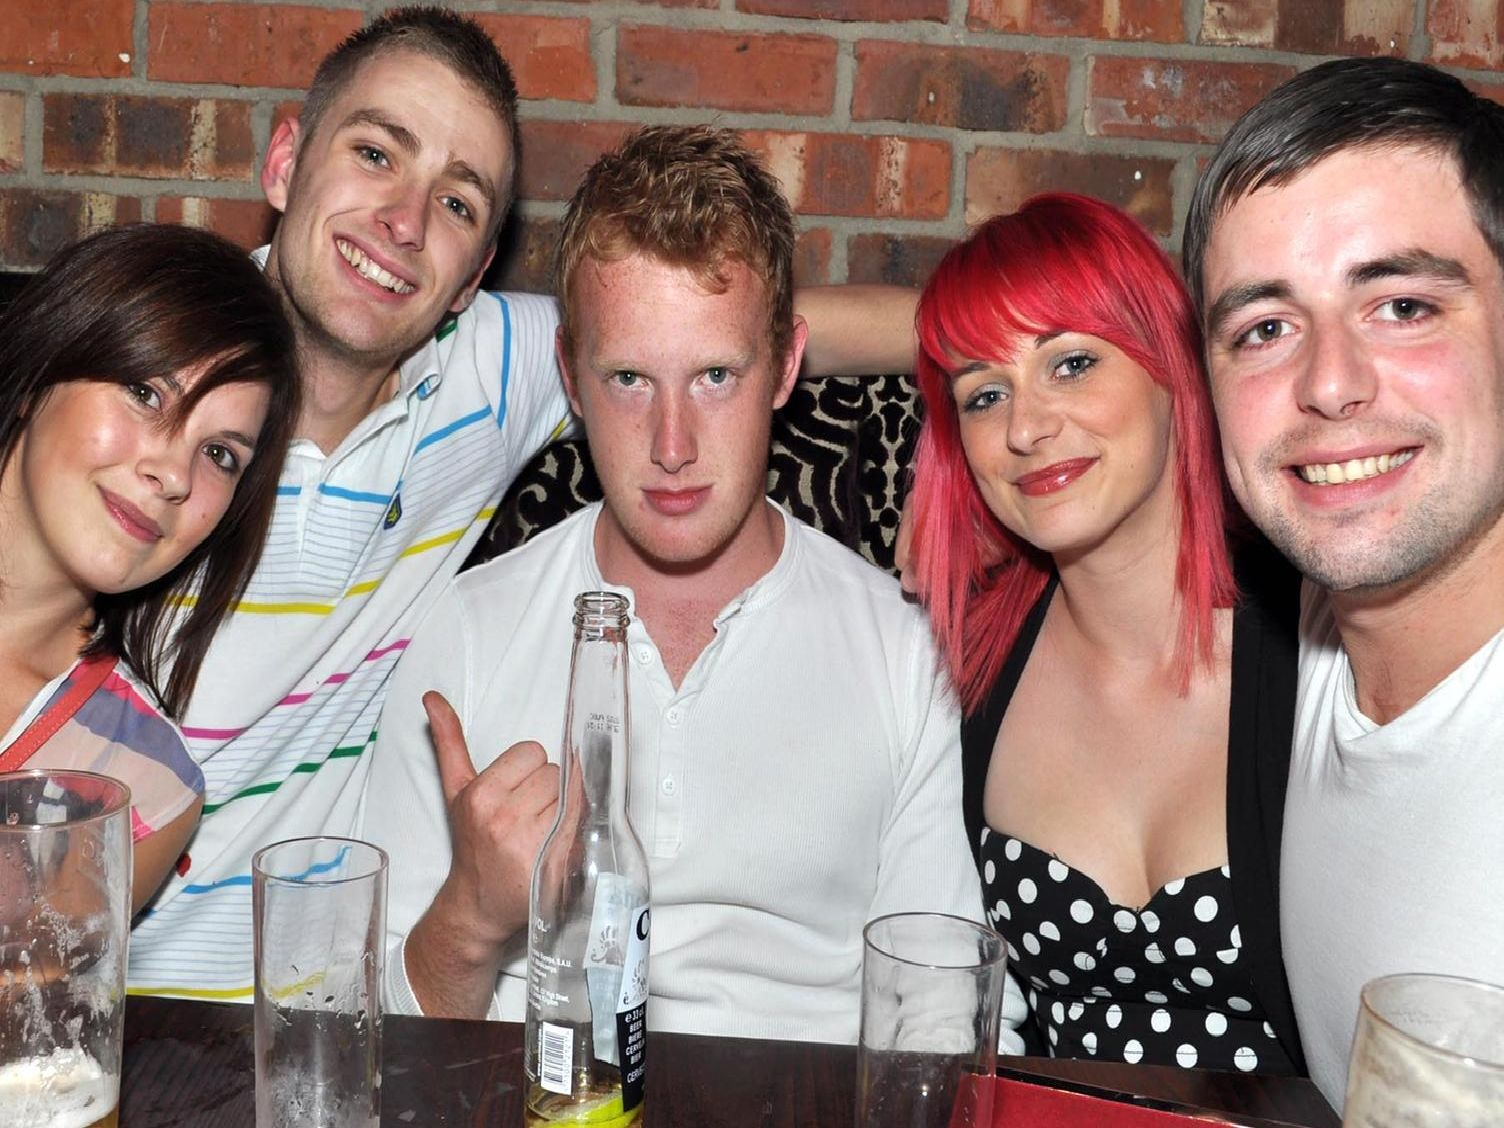 Big Night Out in Scarborough 2011